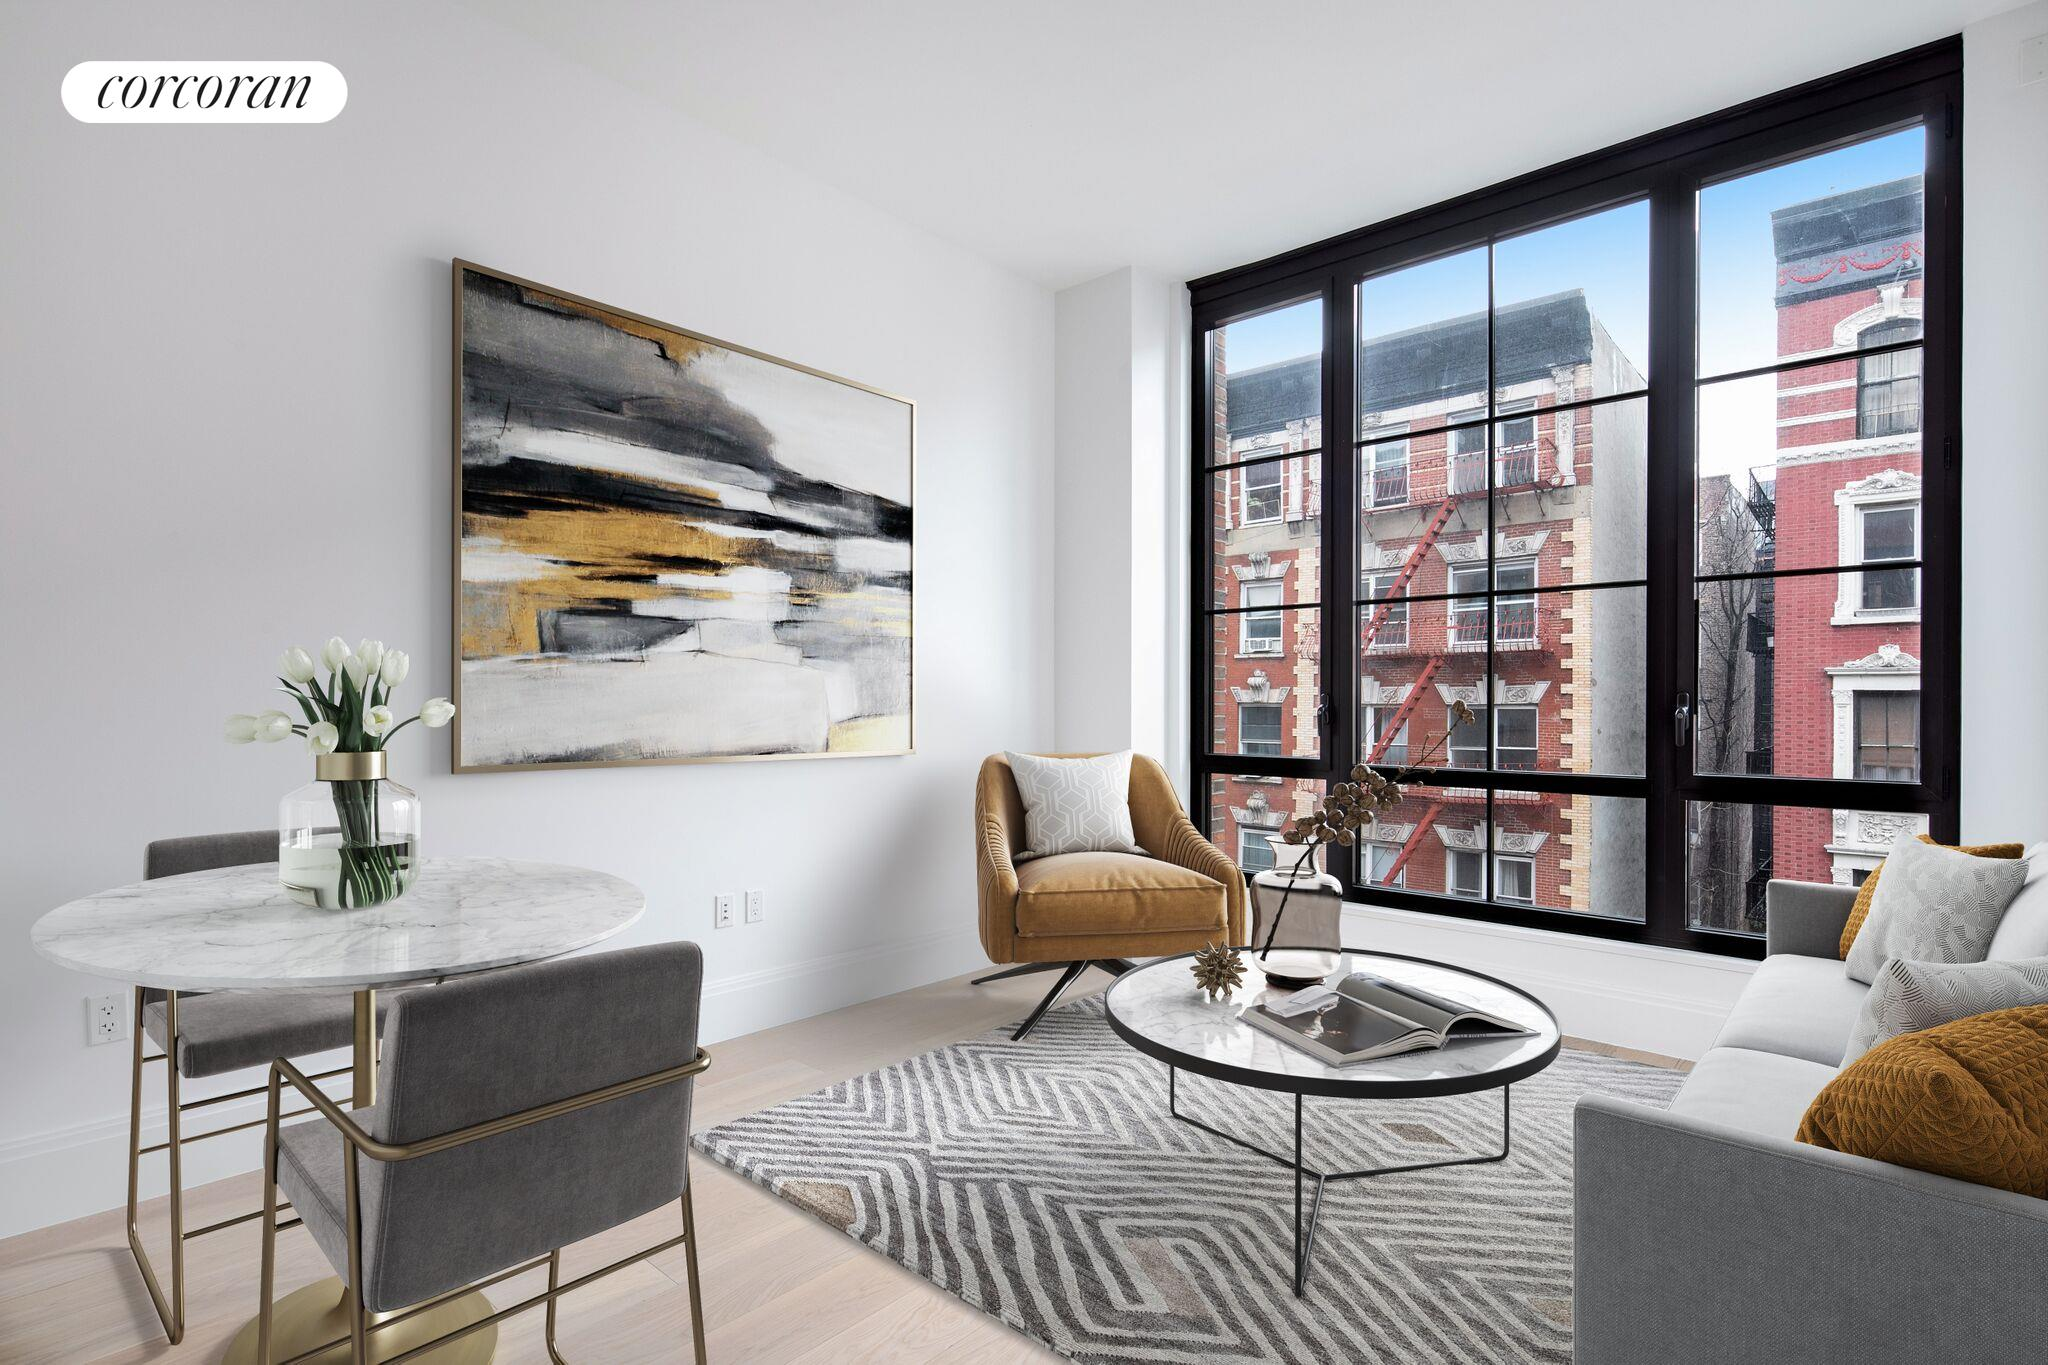 This lux full-service condominium in the heart of the East Village offers a rare modern retreat in this historic neighborhood. Featuring North and East exposures, this corner 1 bedroom/1 bathroom + home office offers soaring 107 ceilings and 744 square feet of sunlit space.The living room and kitchen feature an open concept layout, which is highlighted by the oversized casement windows framed in statuary bronze. The open concept kitchen with an eat-in island offers ample counter space for cooking and dining. The kitchen has been meticulously designed by Paris Forino with top-of-the-line finishes including Satin lacquer custom Italian cabinetry, limestone and Calacatta marble countertops, and blackened metal hardware. Featuring top-of-the-line appliances by Wolf, Bosch, and Sub-Zero including wine storage, full gas range with hood, built-in microwave, dishwasher, as well a hidden washer/dryer. Floor to ceiling cabinet space provide abundant storage for even the most avid cook.The Master bedroom creates a serene sanctuary above the ever-evolving streets of the EastVillage, looking out onto the charming historic village buildings. The oversized floor to ceiling casement windows open up the room and envelop it in natural light. The roomy French door closet makes generous space for storage, with an additional closet in the home office.The en-suite master bath features sleek black and white tiled finishes including Bianco Carrara honed mosaic floors and a custom-cerused white oak vanity and a Bianco Dolomiti countertop, with Waterworks chrome fittings throughout. The extra-large vanity provides plentiful storage along with a full-length mirror which opens up to reveal hidden recessed shelving.The Steiner East Village, a collaboration between Paris Forino Interior Design with architecture by S9 Architects and landscape architecture by Future Green Studio, provides an extraordinarily unique living experience in one of Manhattans most culturally rich neighborhoods.This full-